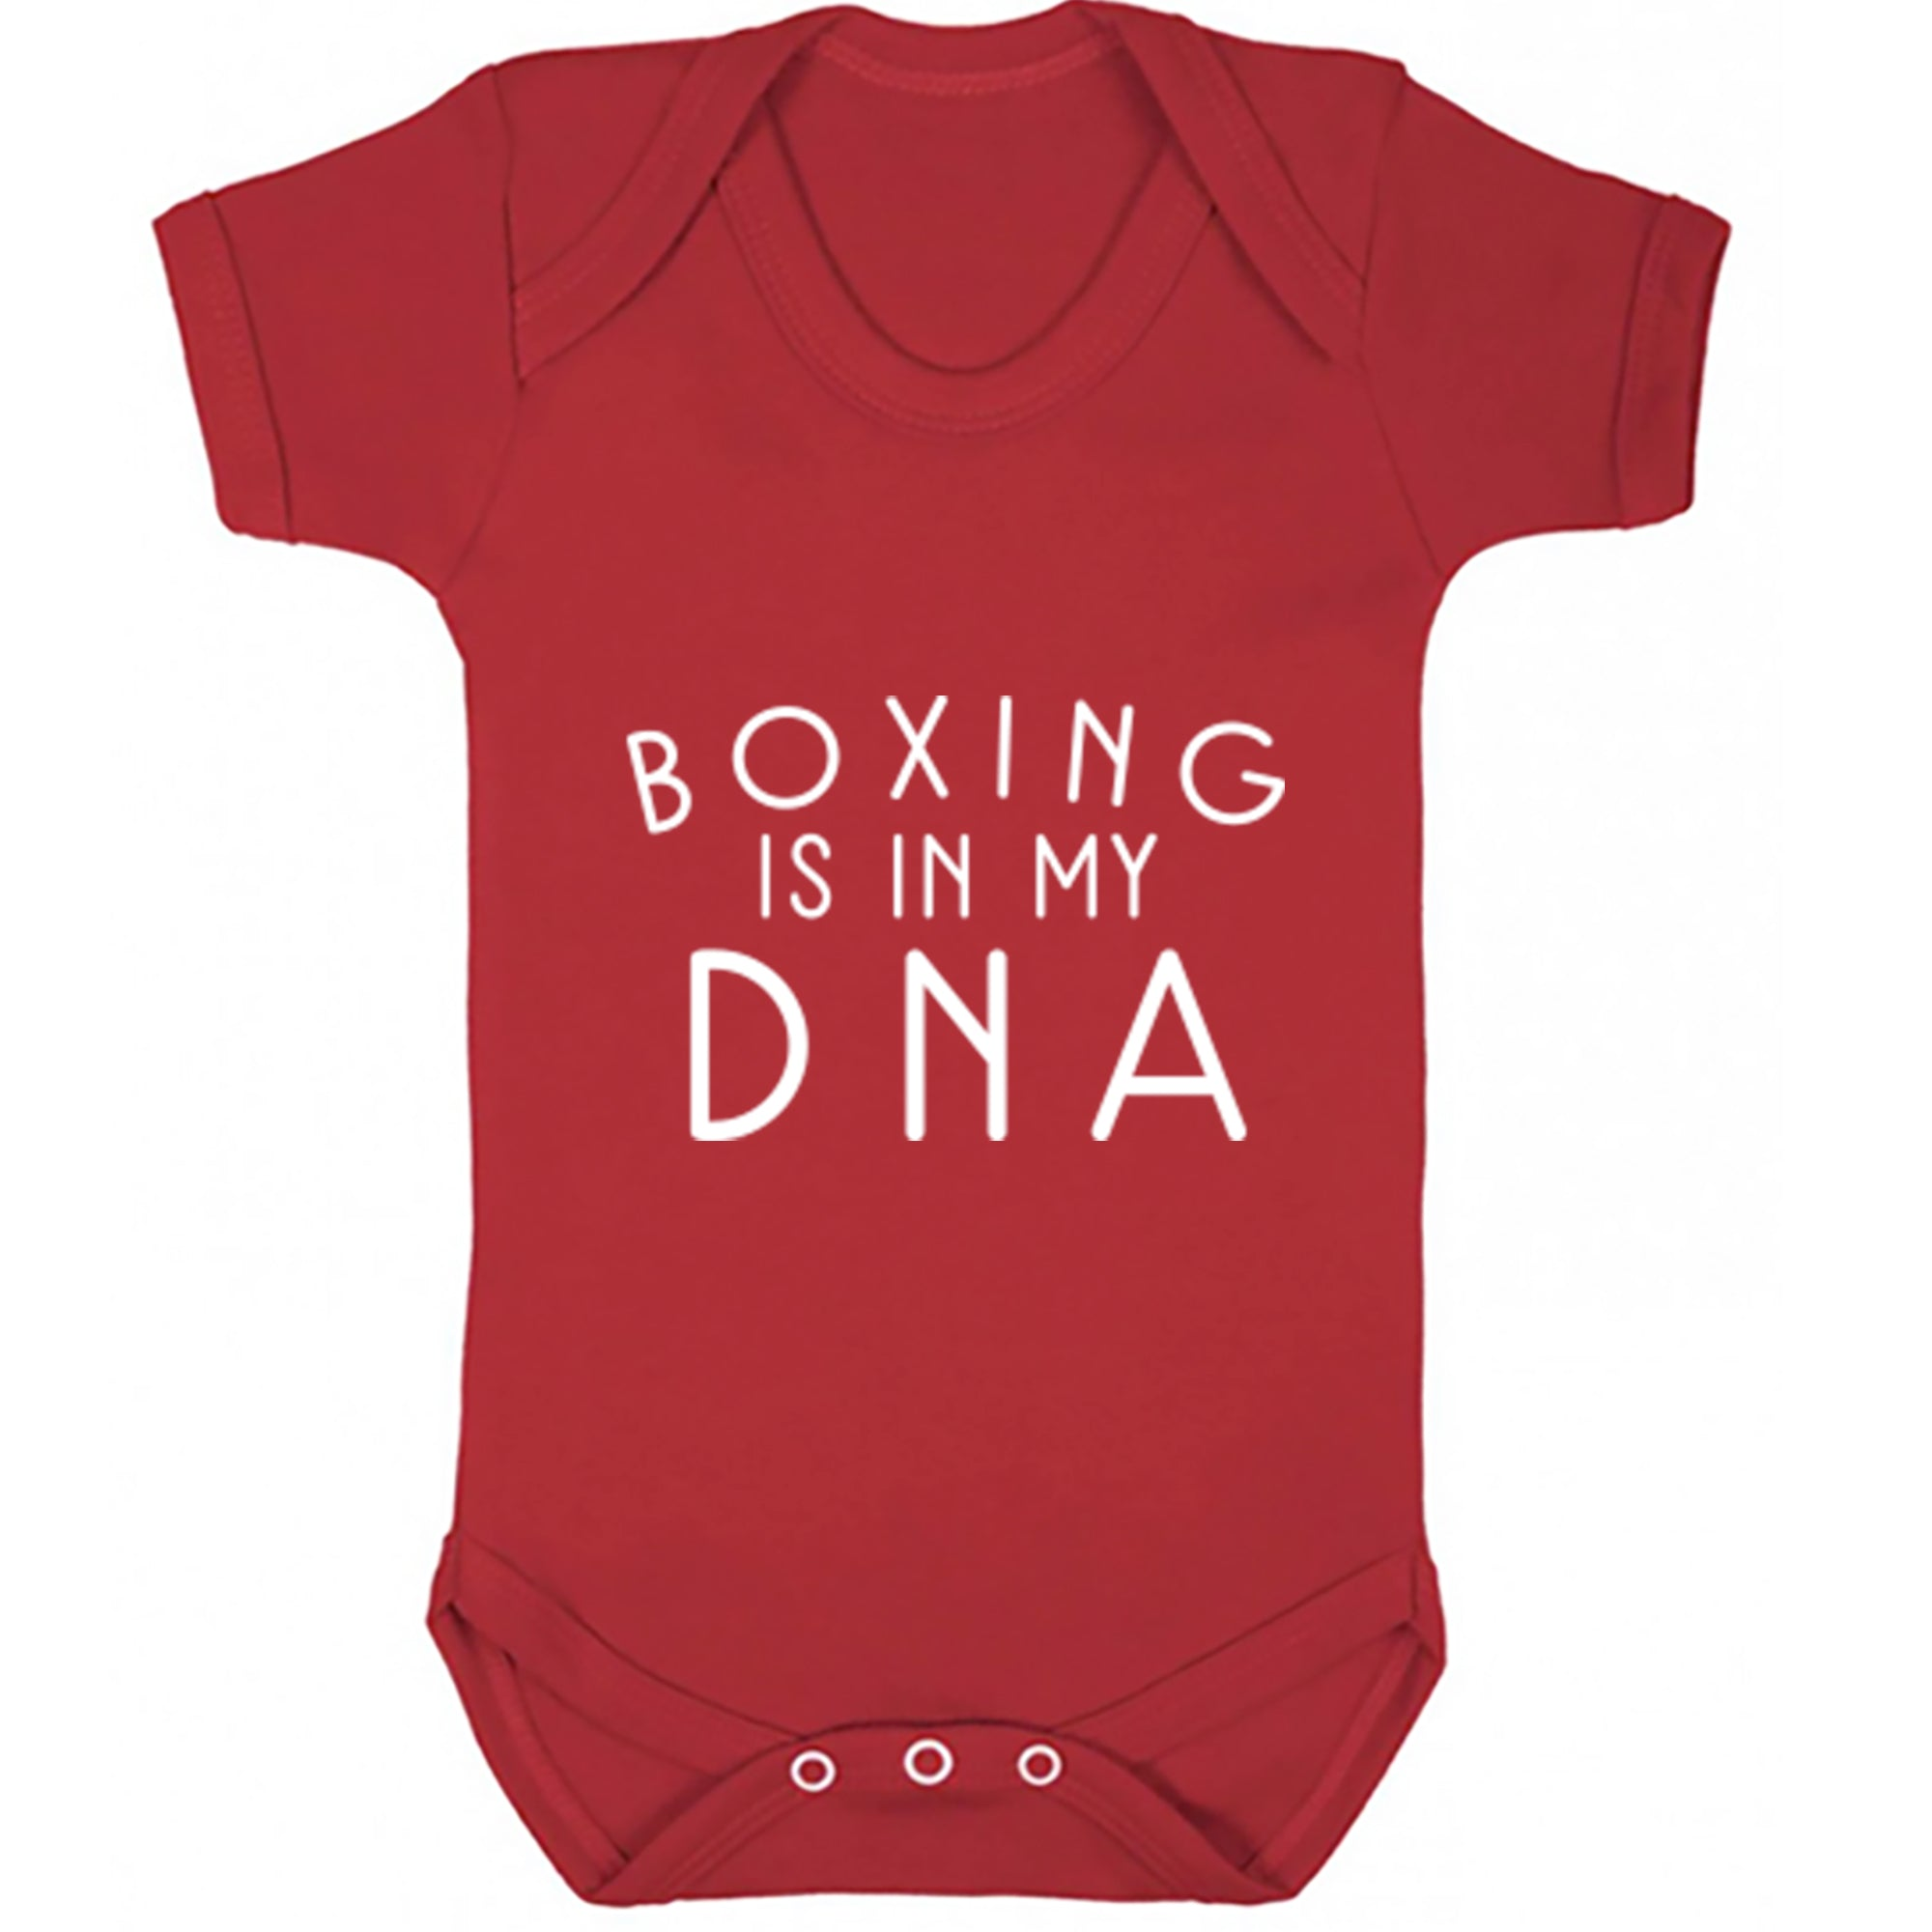 Boxing Is In My DNA Baby Vest S0694